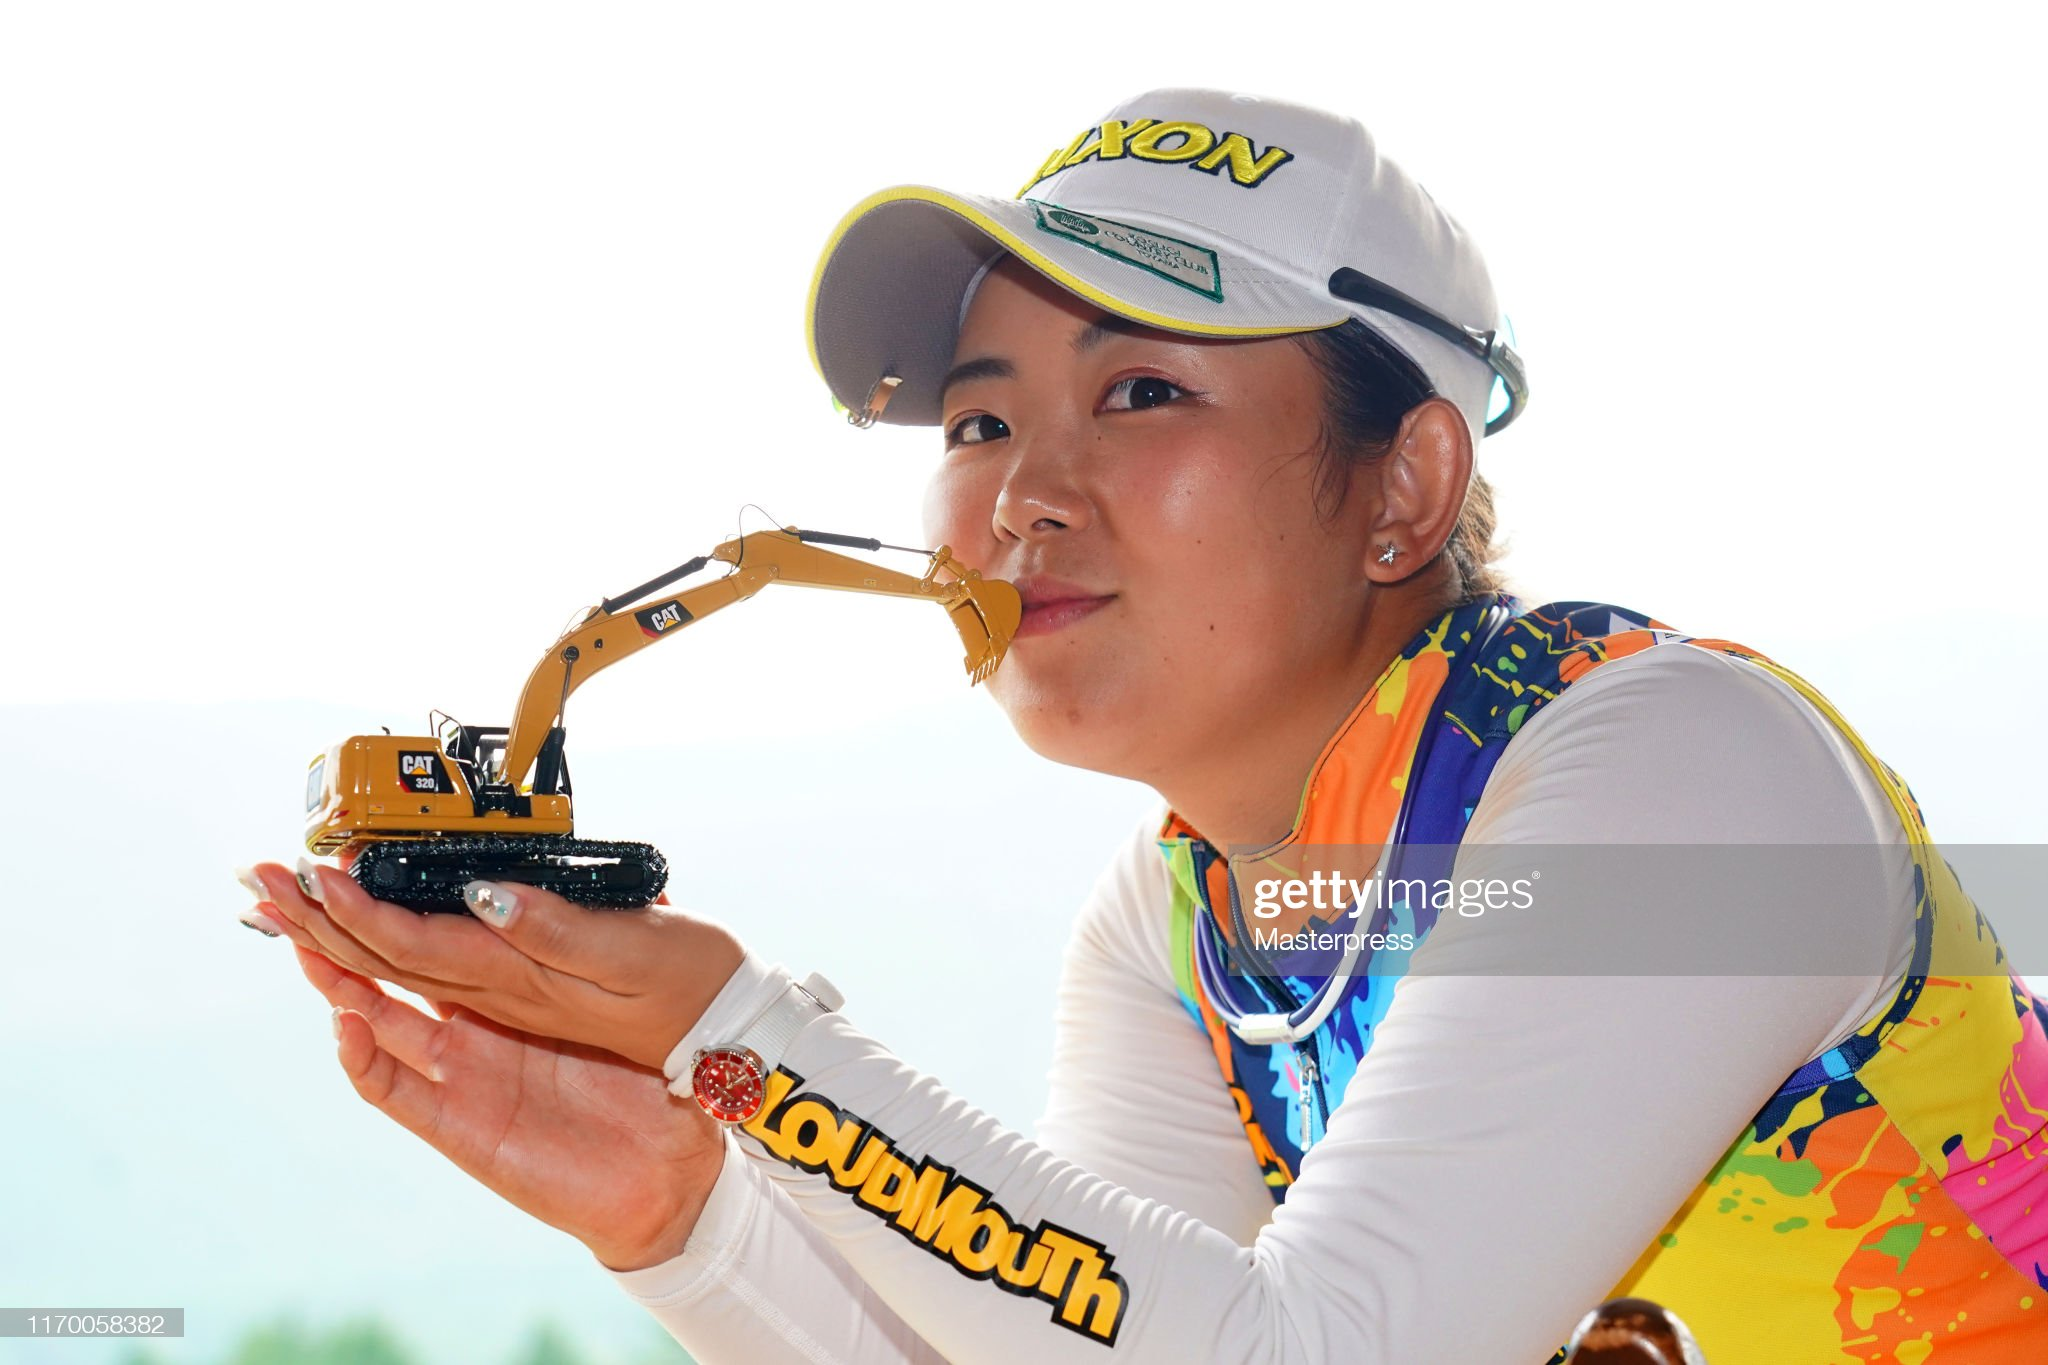 https://media.gettyimages.com/photos/winner-saki-asai-of-japan-poses-with-a-model-of-a-caterpillar-power-picture-id1170058382?s=2048x2048